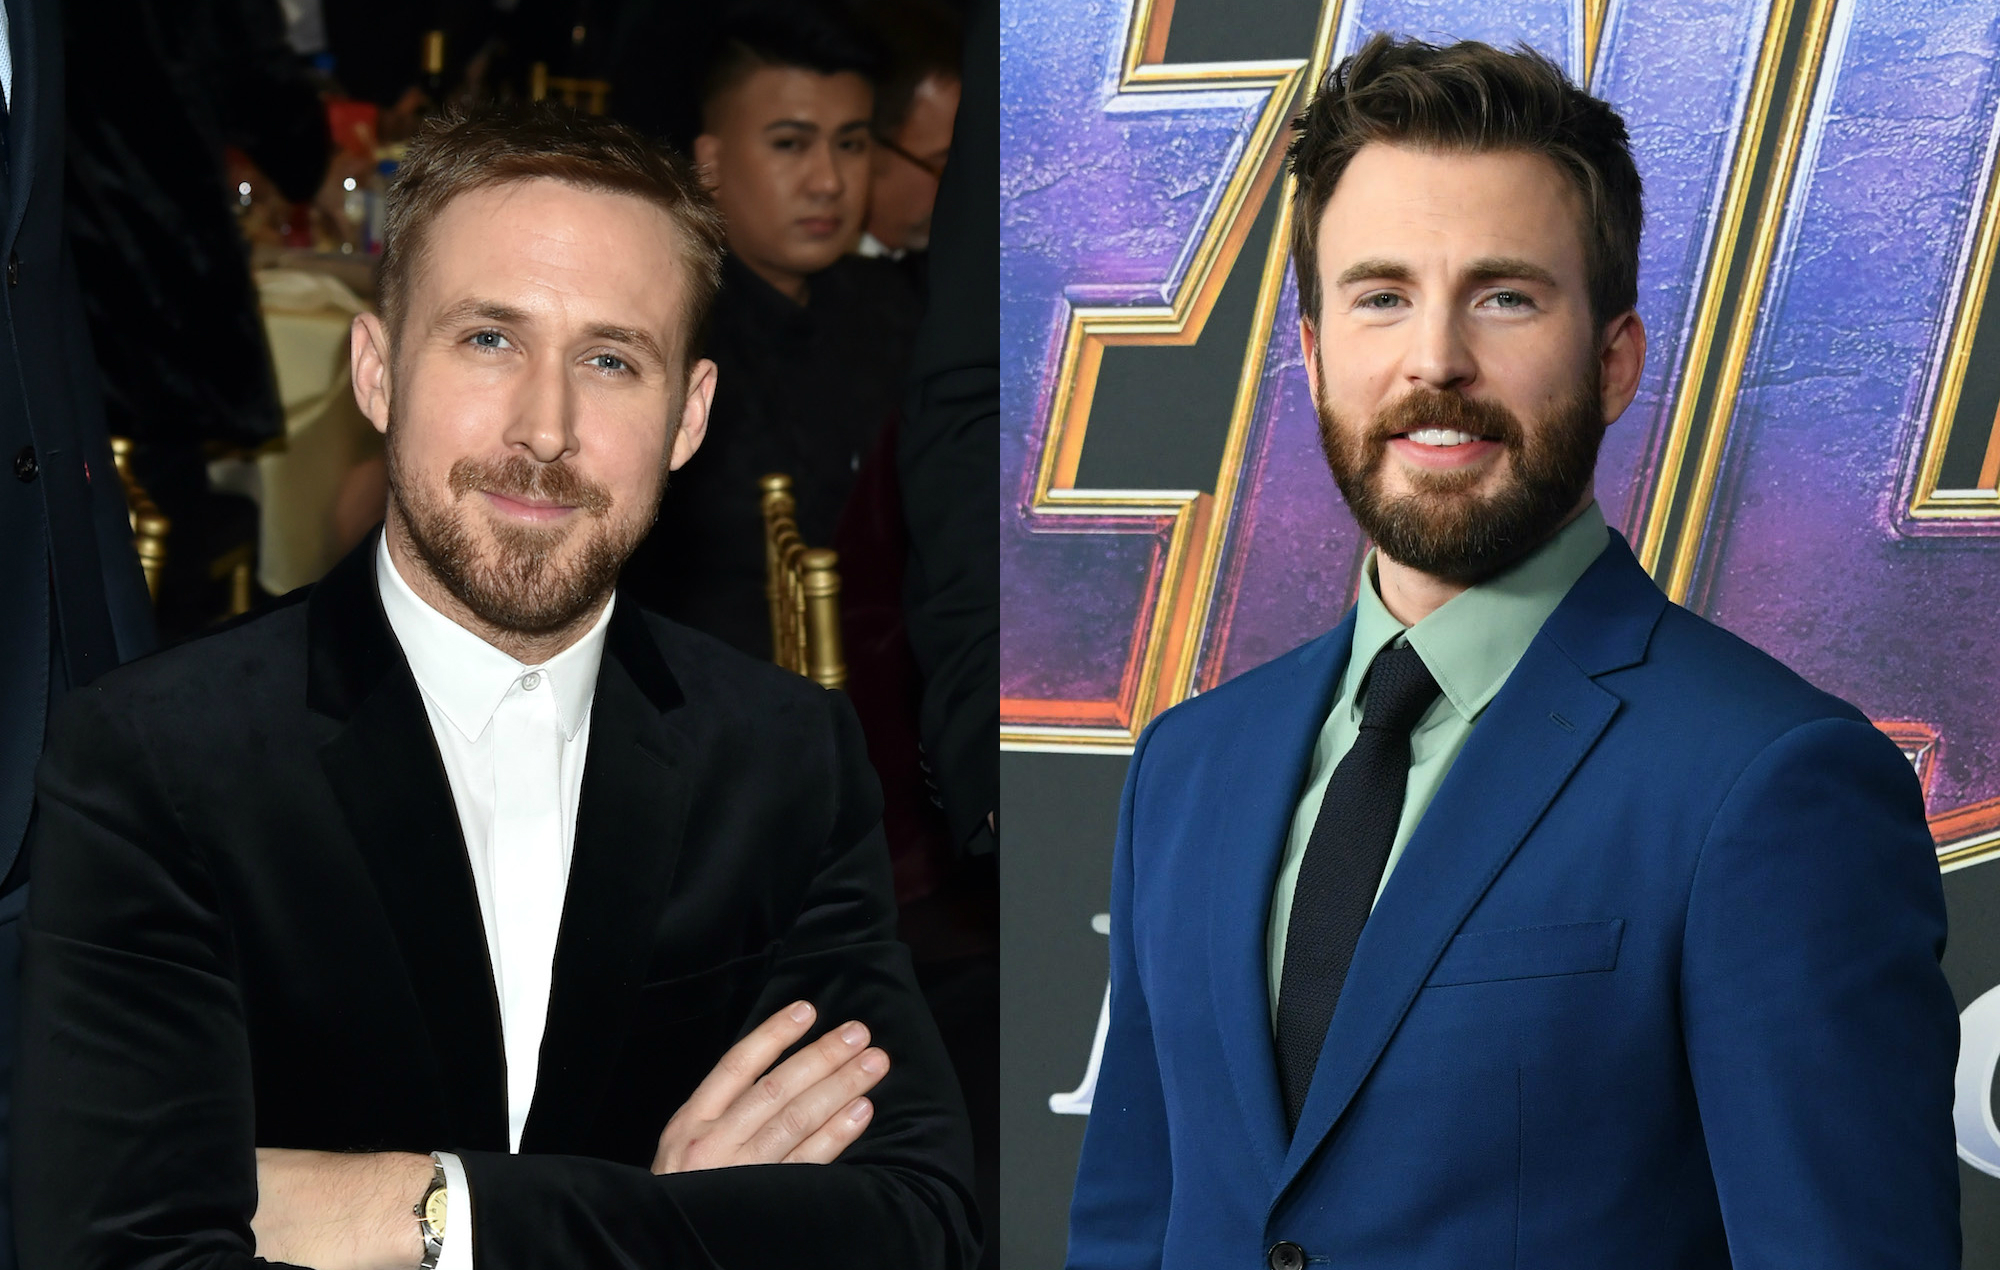 Ryan Gosling and Chris Evans to star in Netflix spy thriller 'The Gray Man'